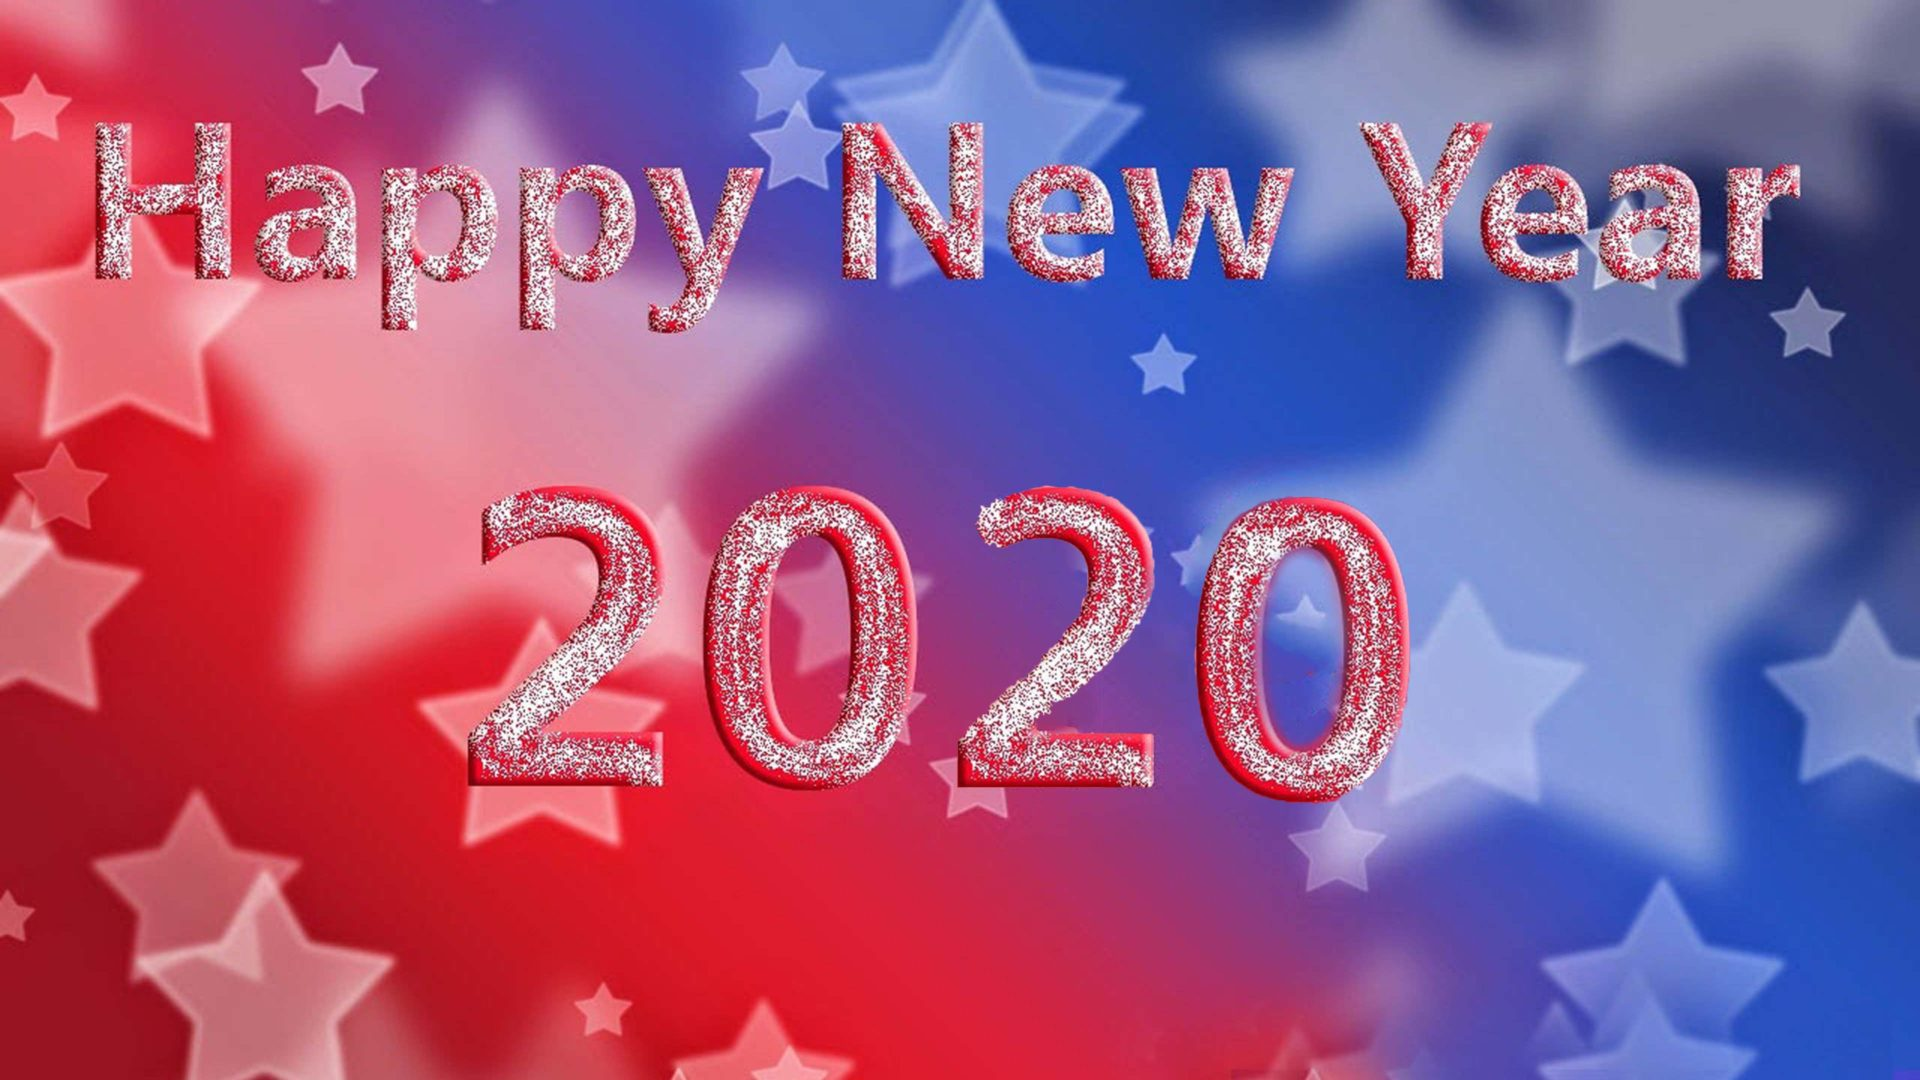 Happy New Year 2020 Greeting Card For Android Mobile Phones Hd 1920x1080